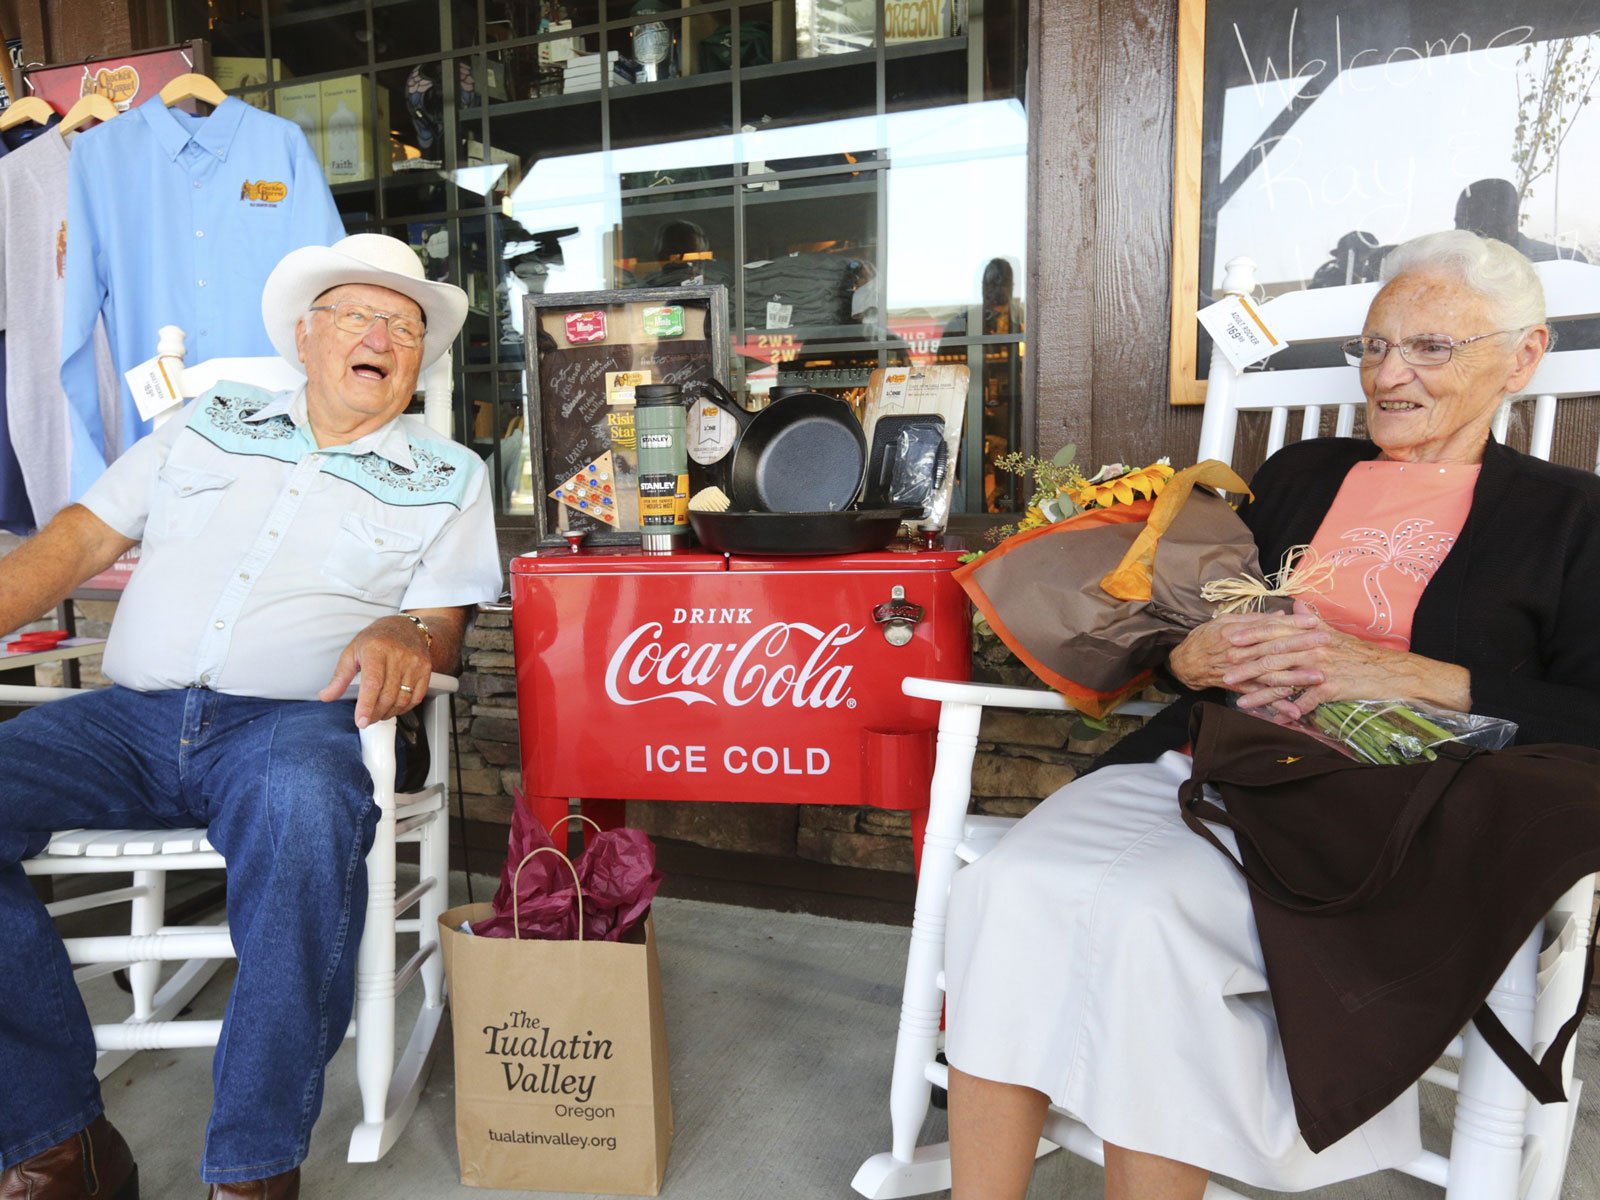 Couple Visits Every Cracker Barrel Location